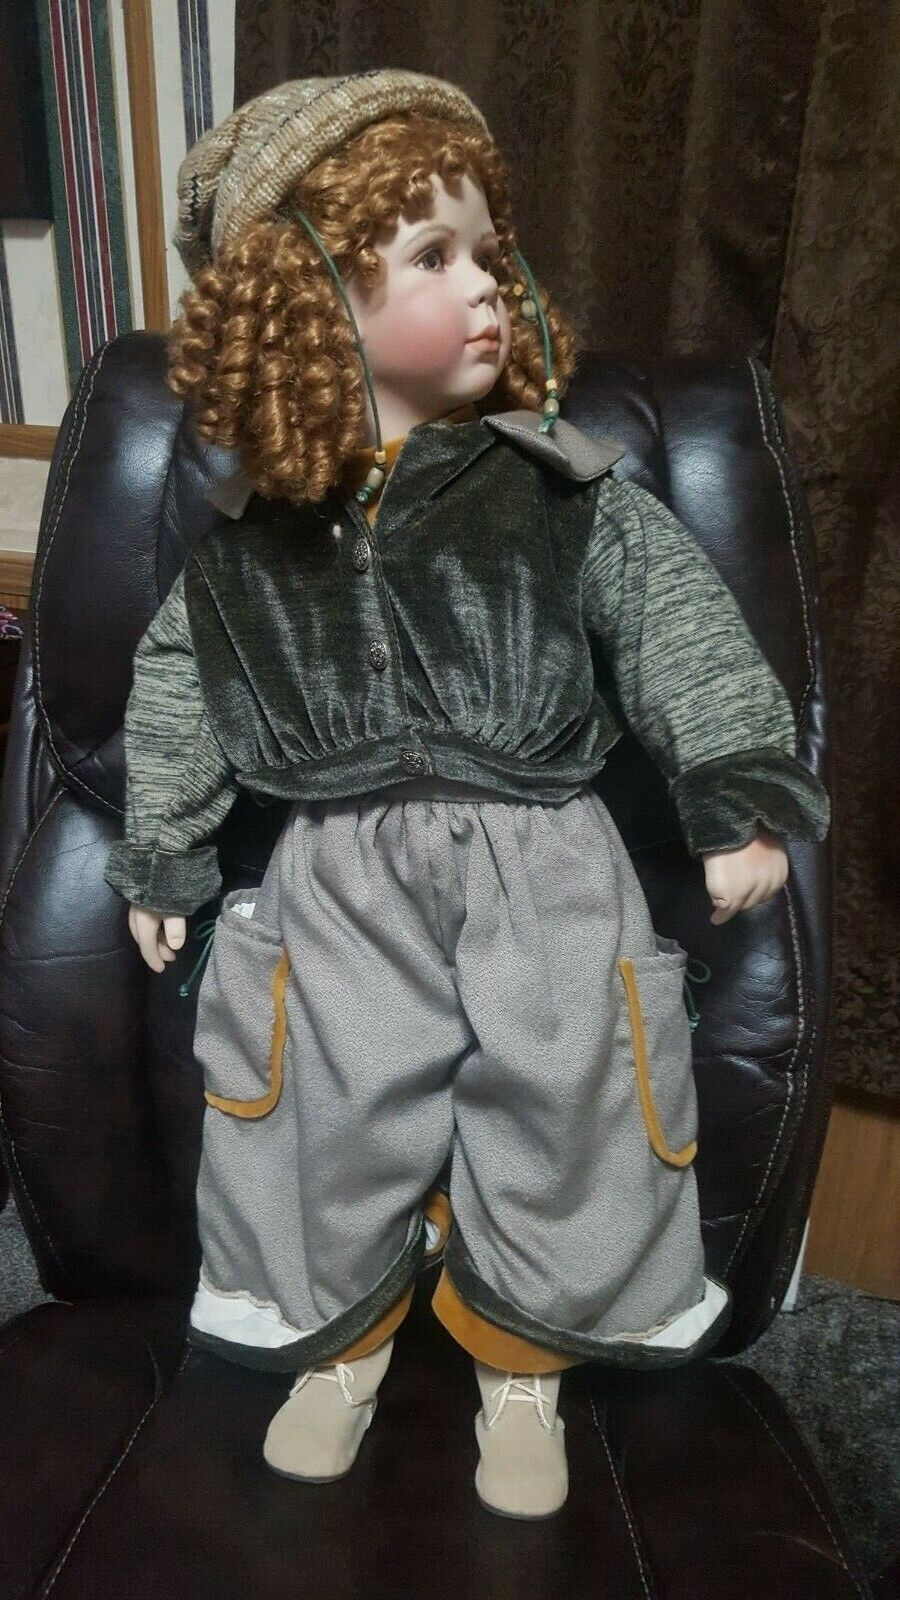 Large Vintage Victorian Porcelain Doll - Show Stoppers - EXTREMELY RARE